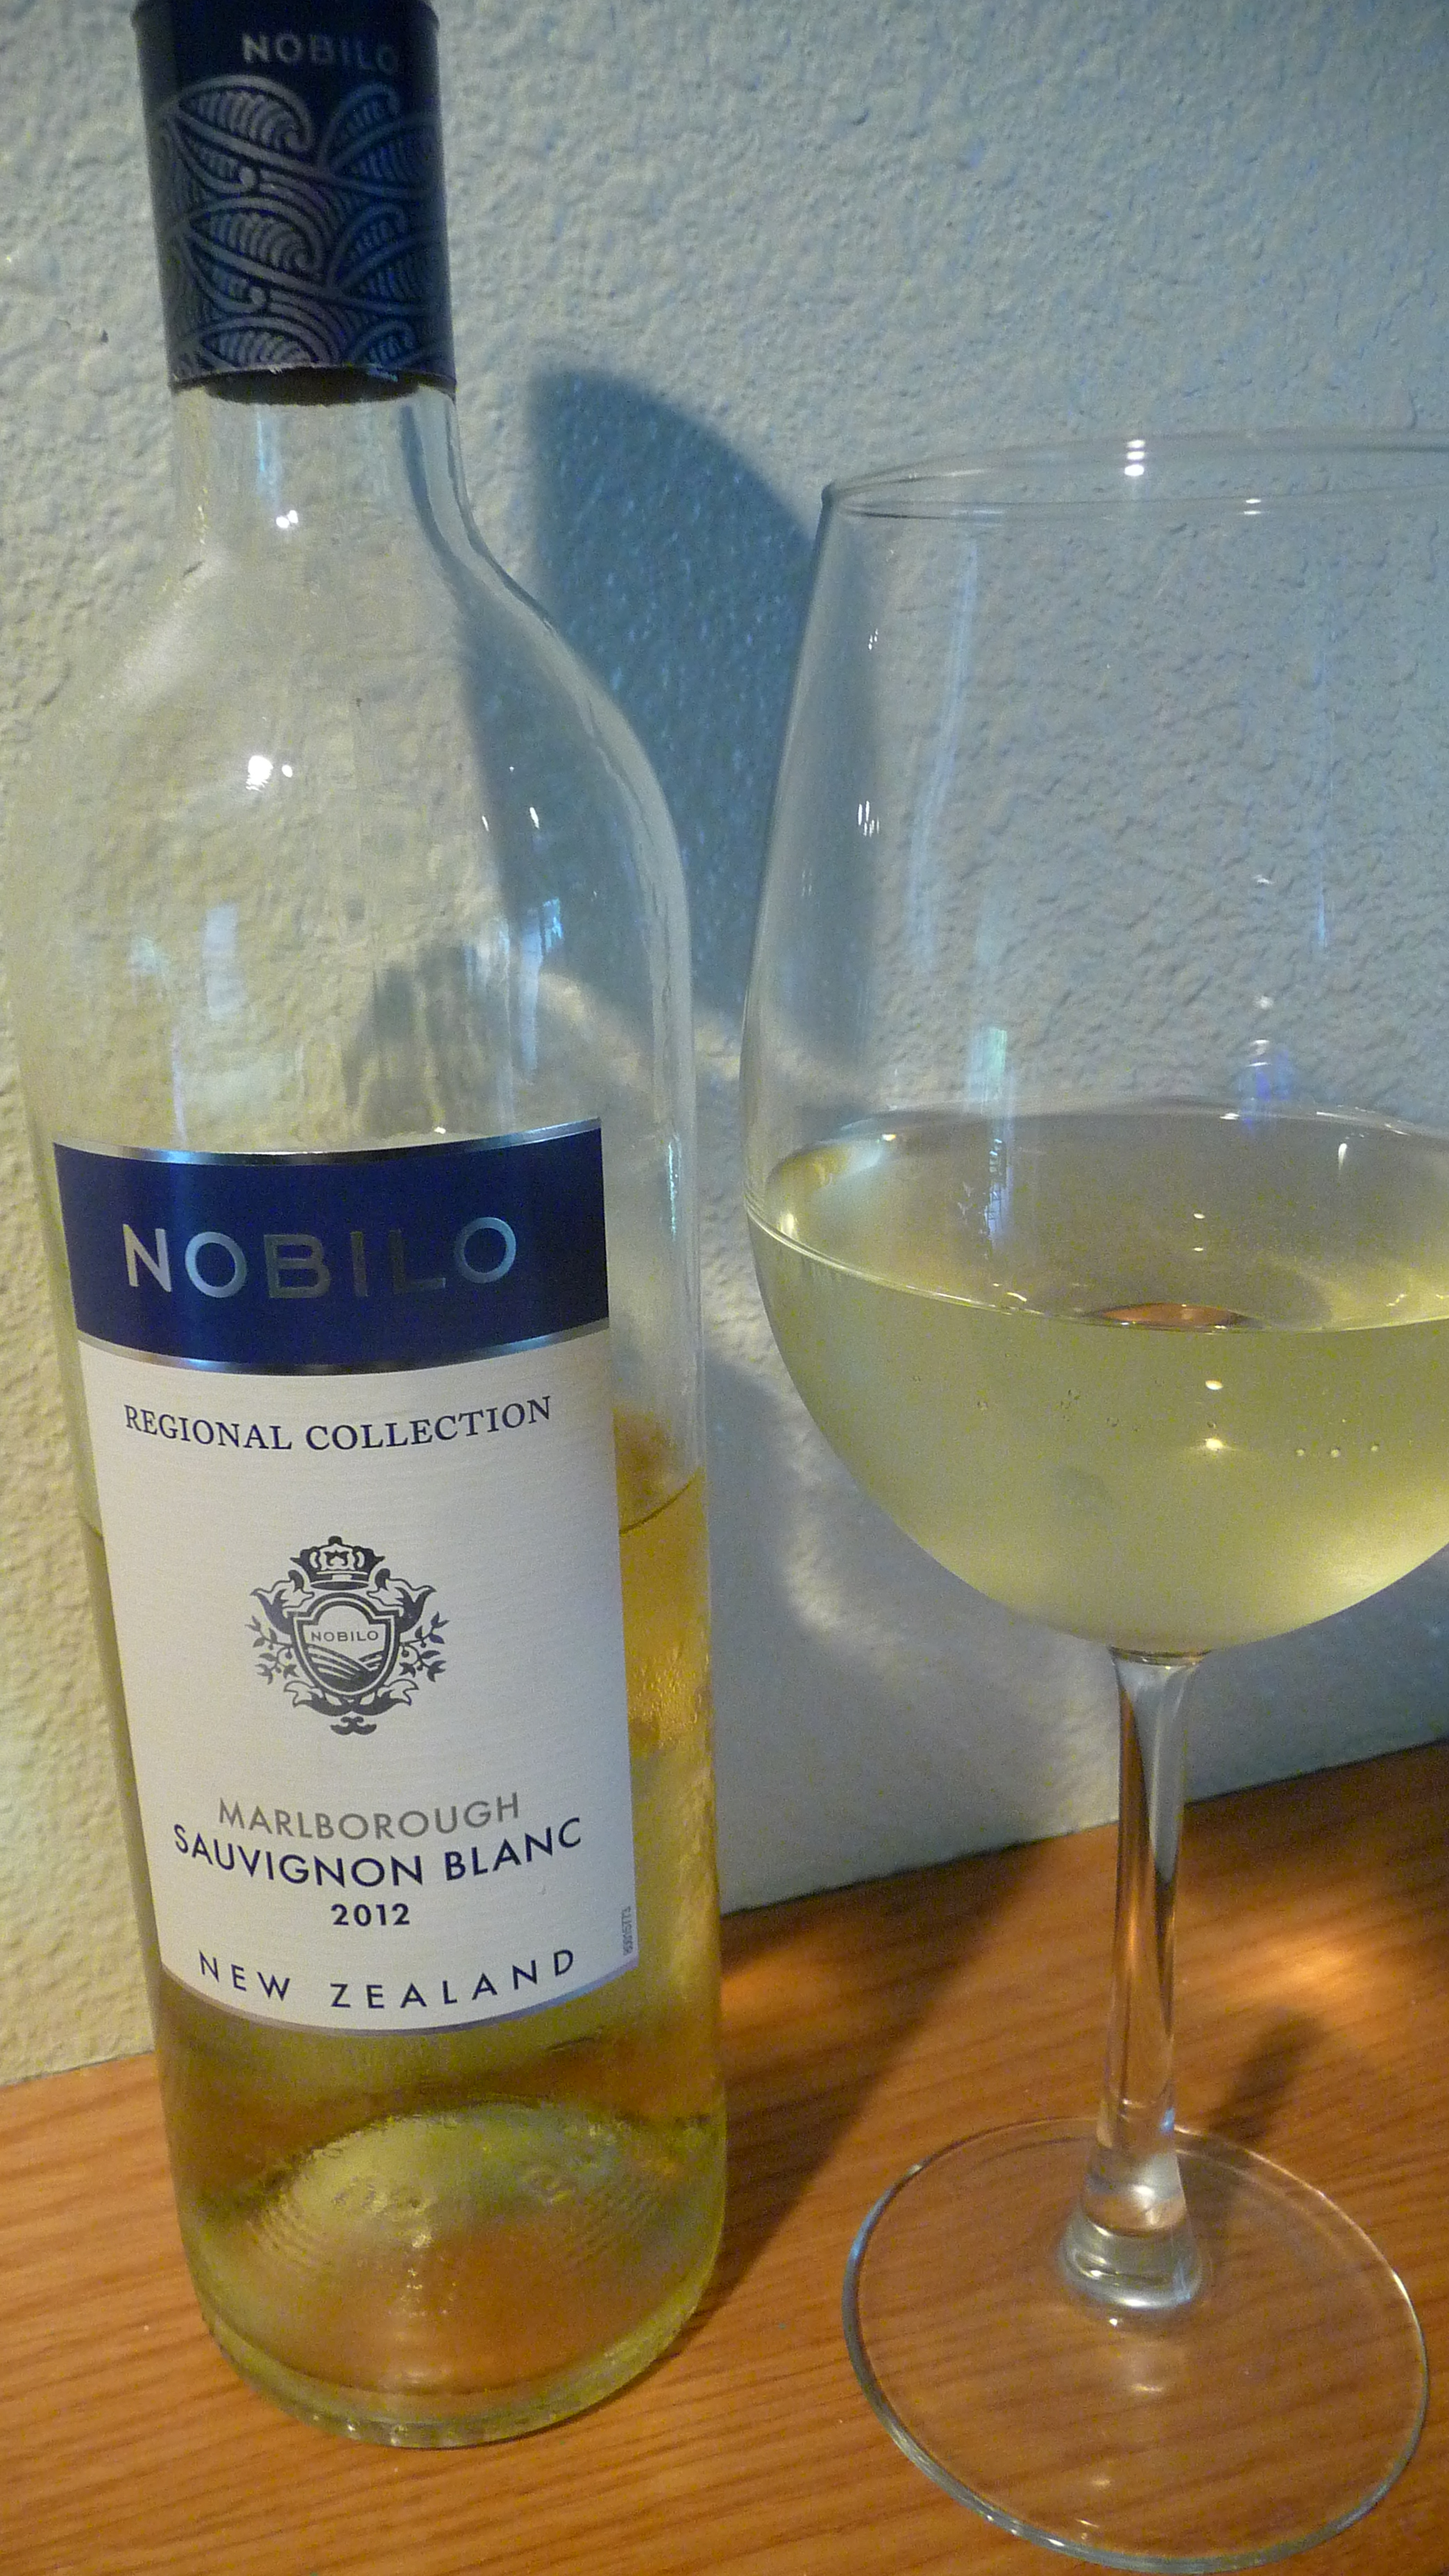 Another easily found Sauvignon Blanc from the Marlborough region to accompany traditional 4th of July fair on a warm Independence Day-Nobilo Sauv Blanc